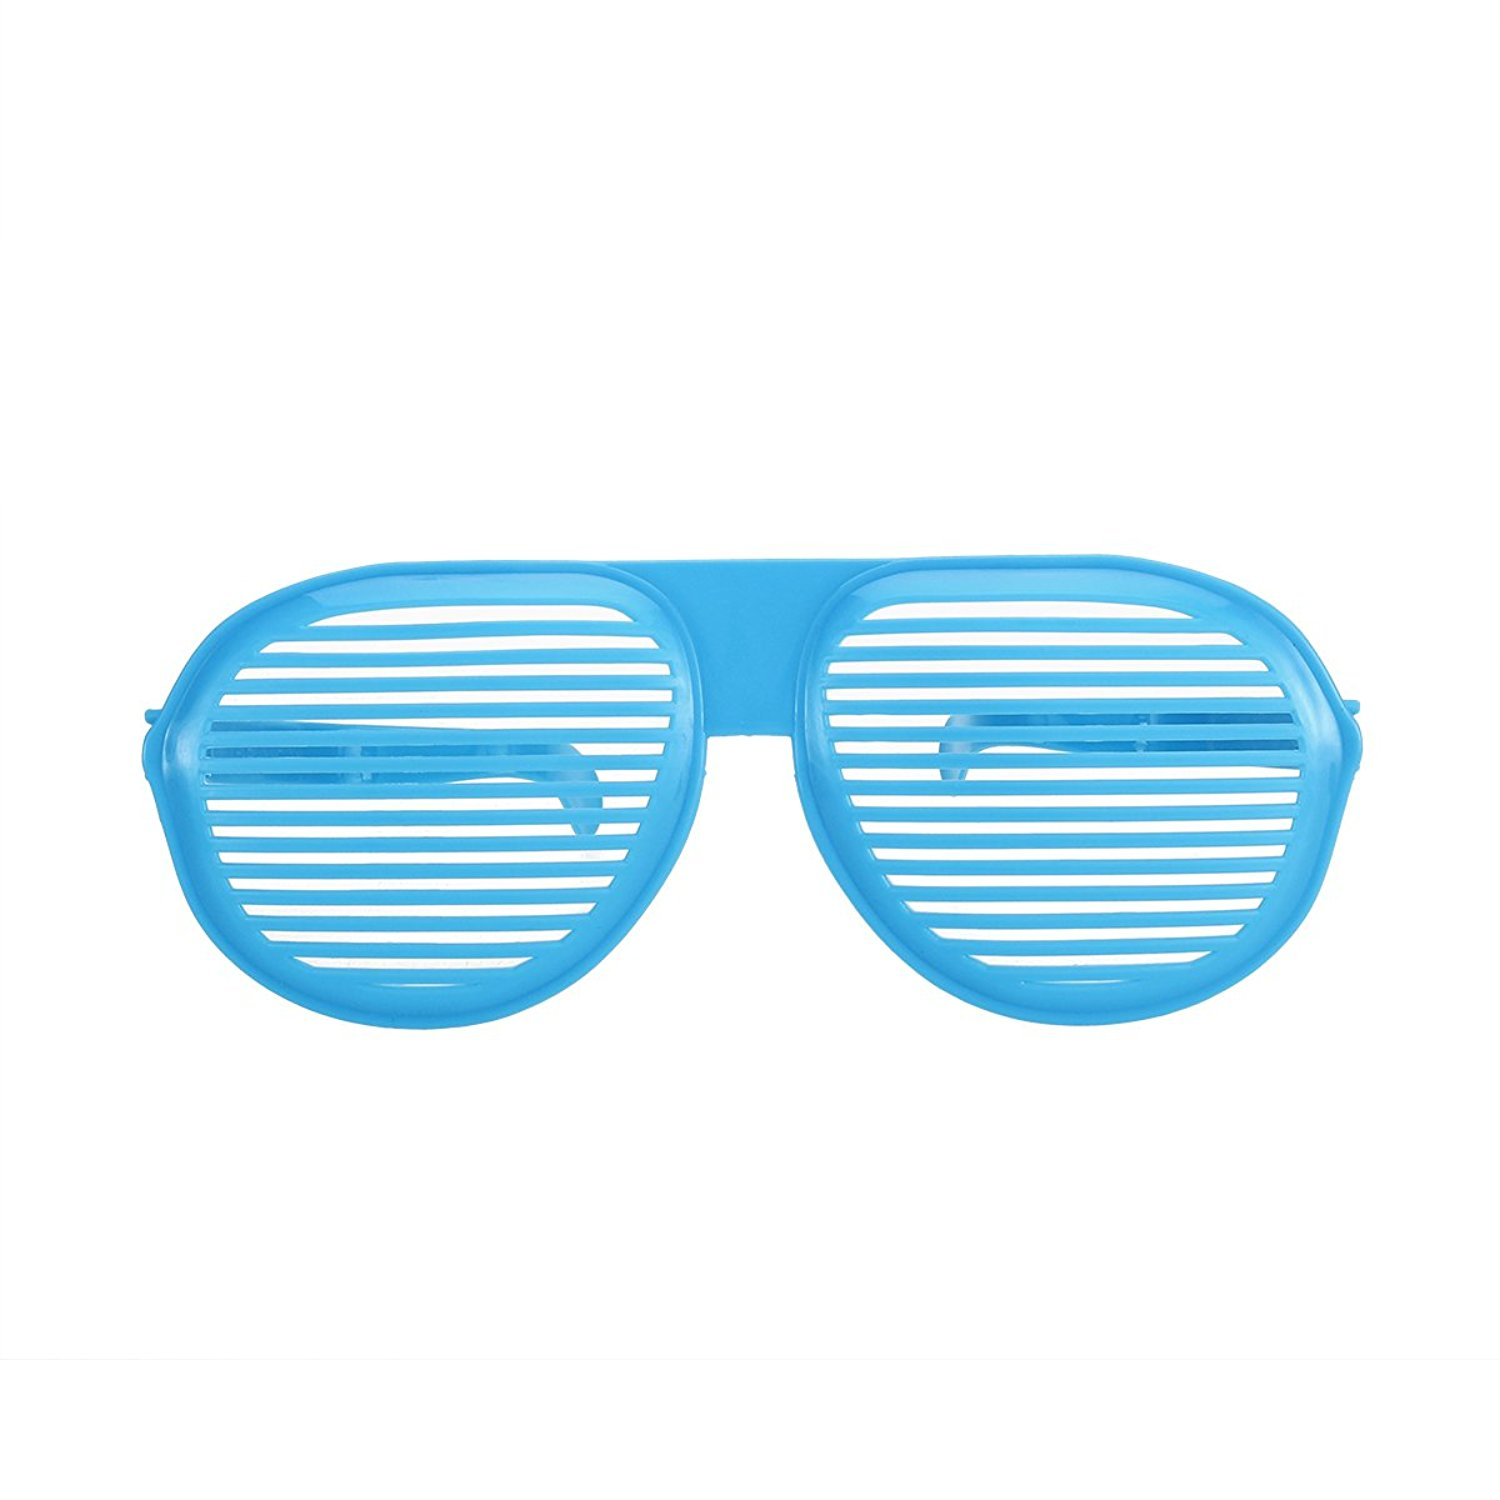 Cheap Oversized Party Glasses, find Oversized Party Glasses deals on